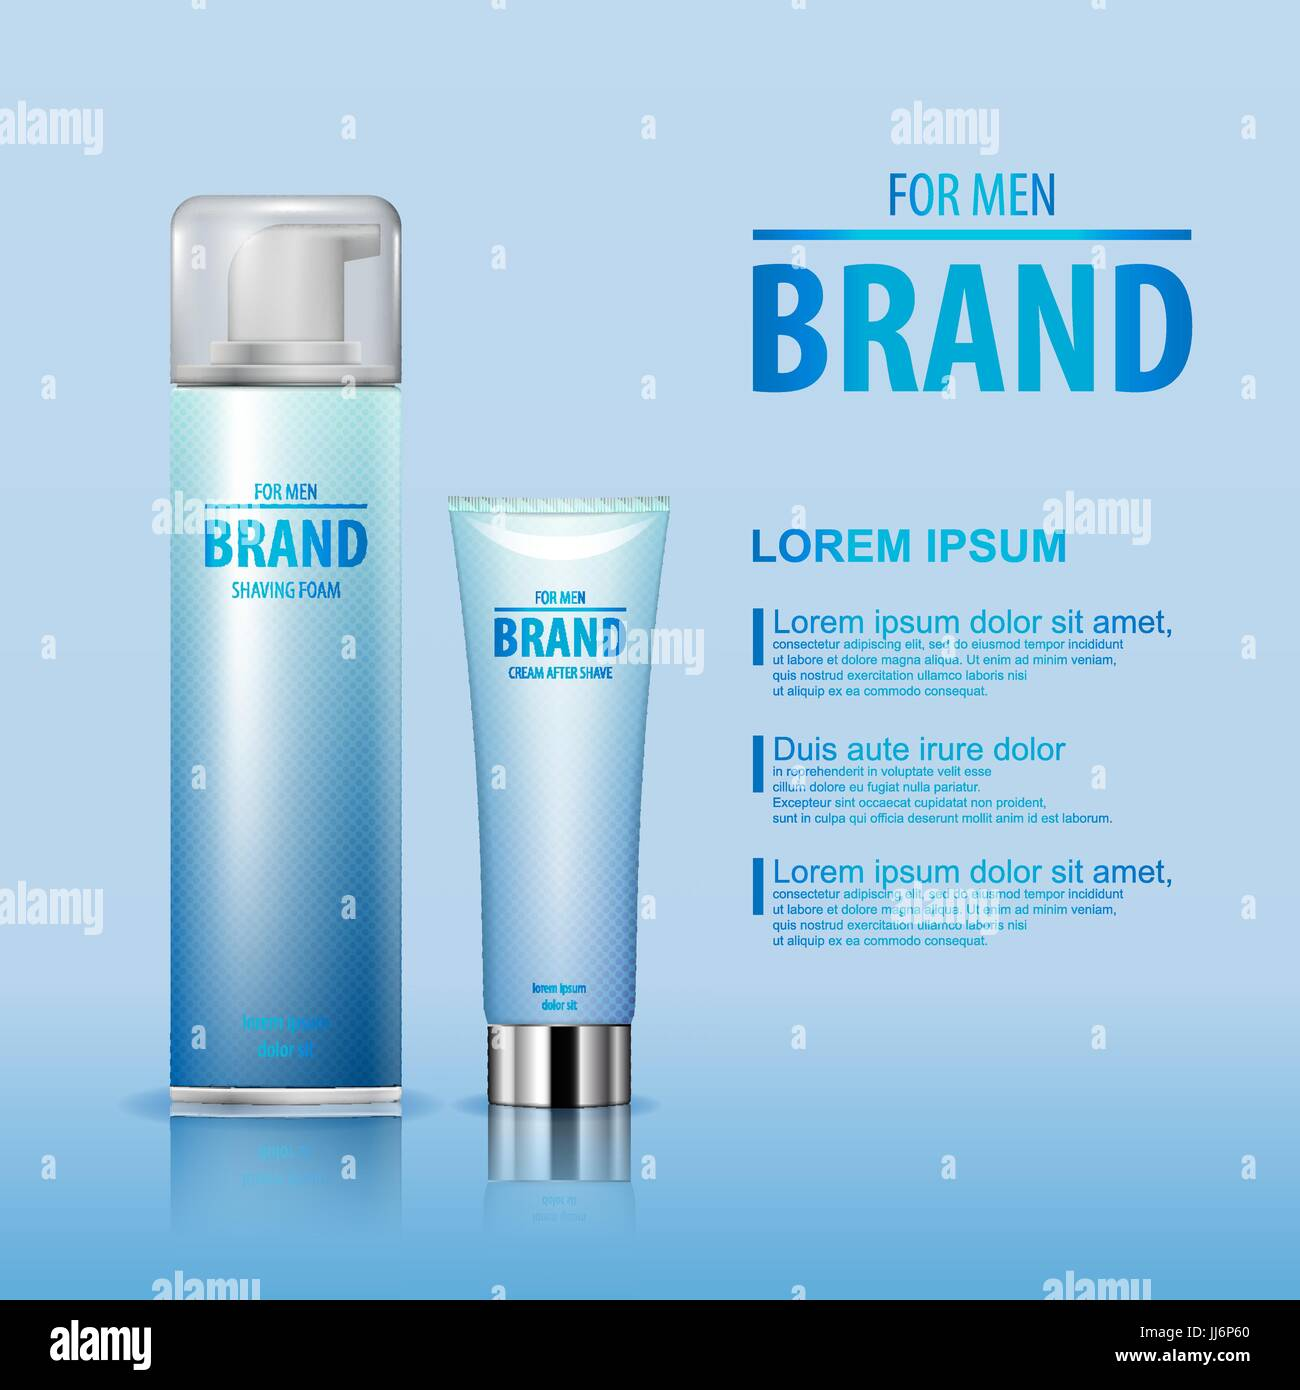 After shave cream and shaving foam set for man with brand name on blue background isolated. vector illustration. - Stock Image